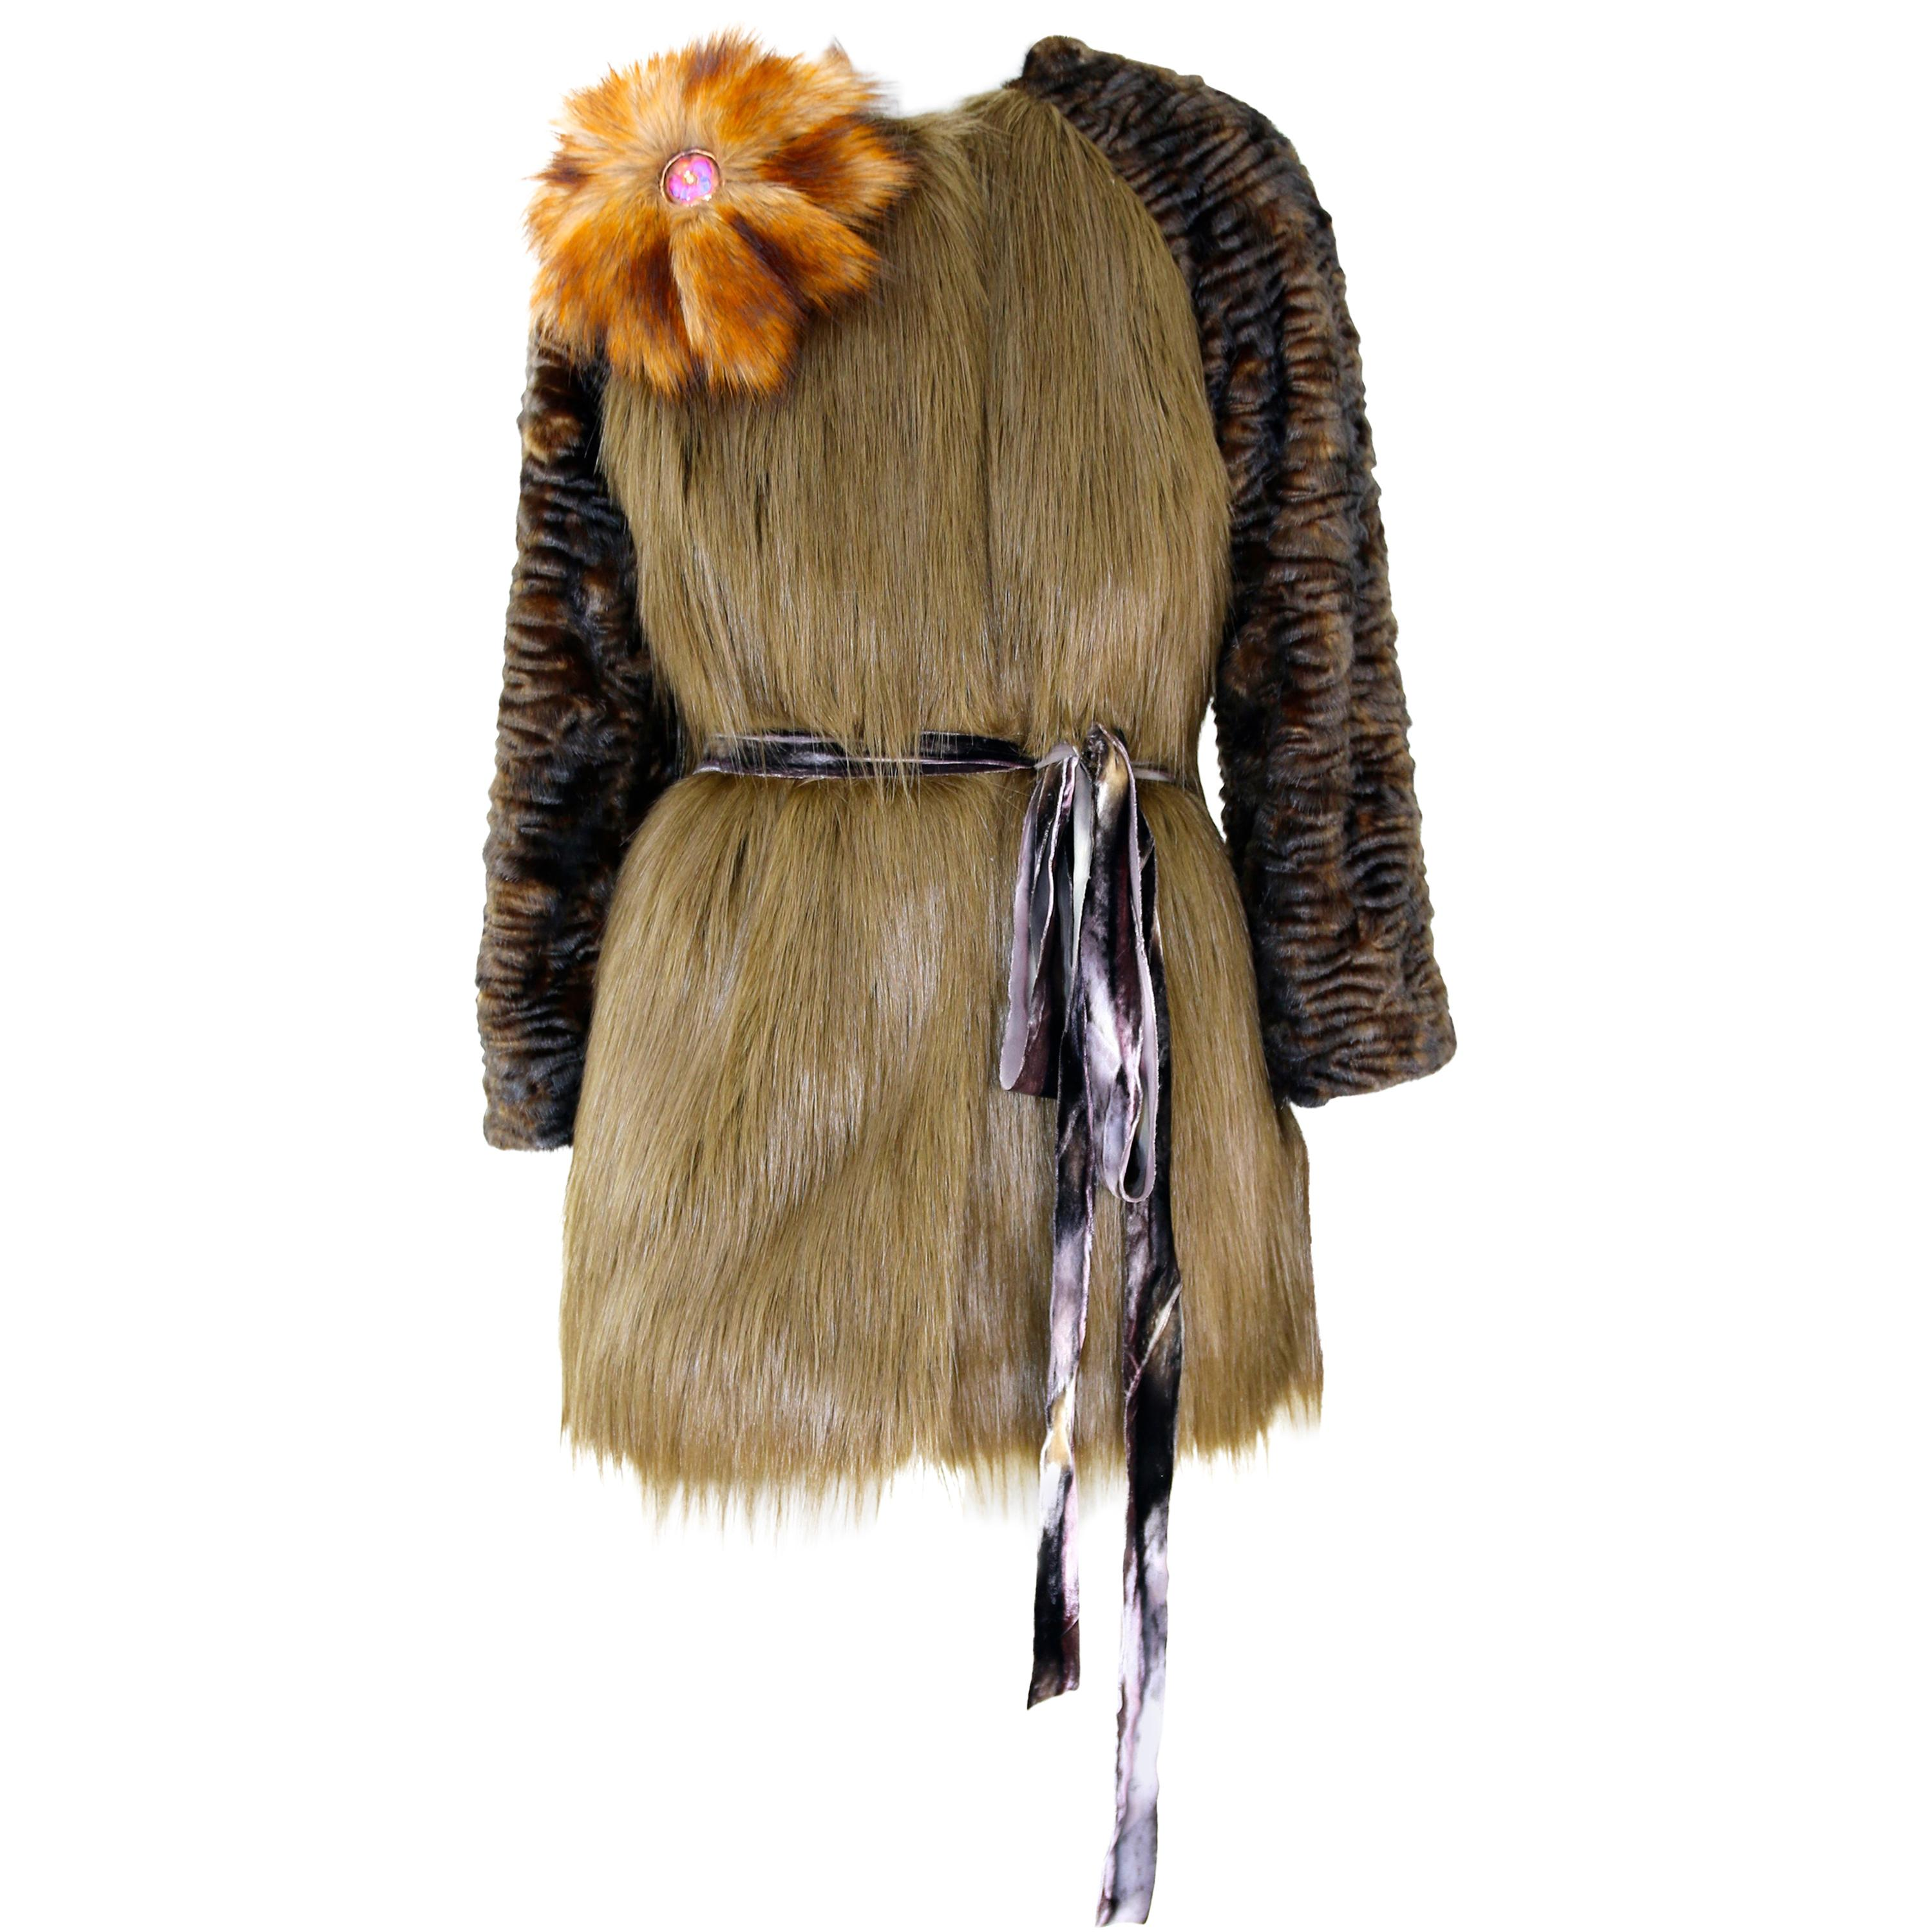 Pelush Moss Green and Brown Faux Fur Jacket In Faux Fox And Astrakhan -XS/Small